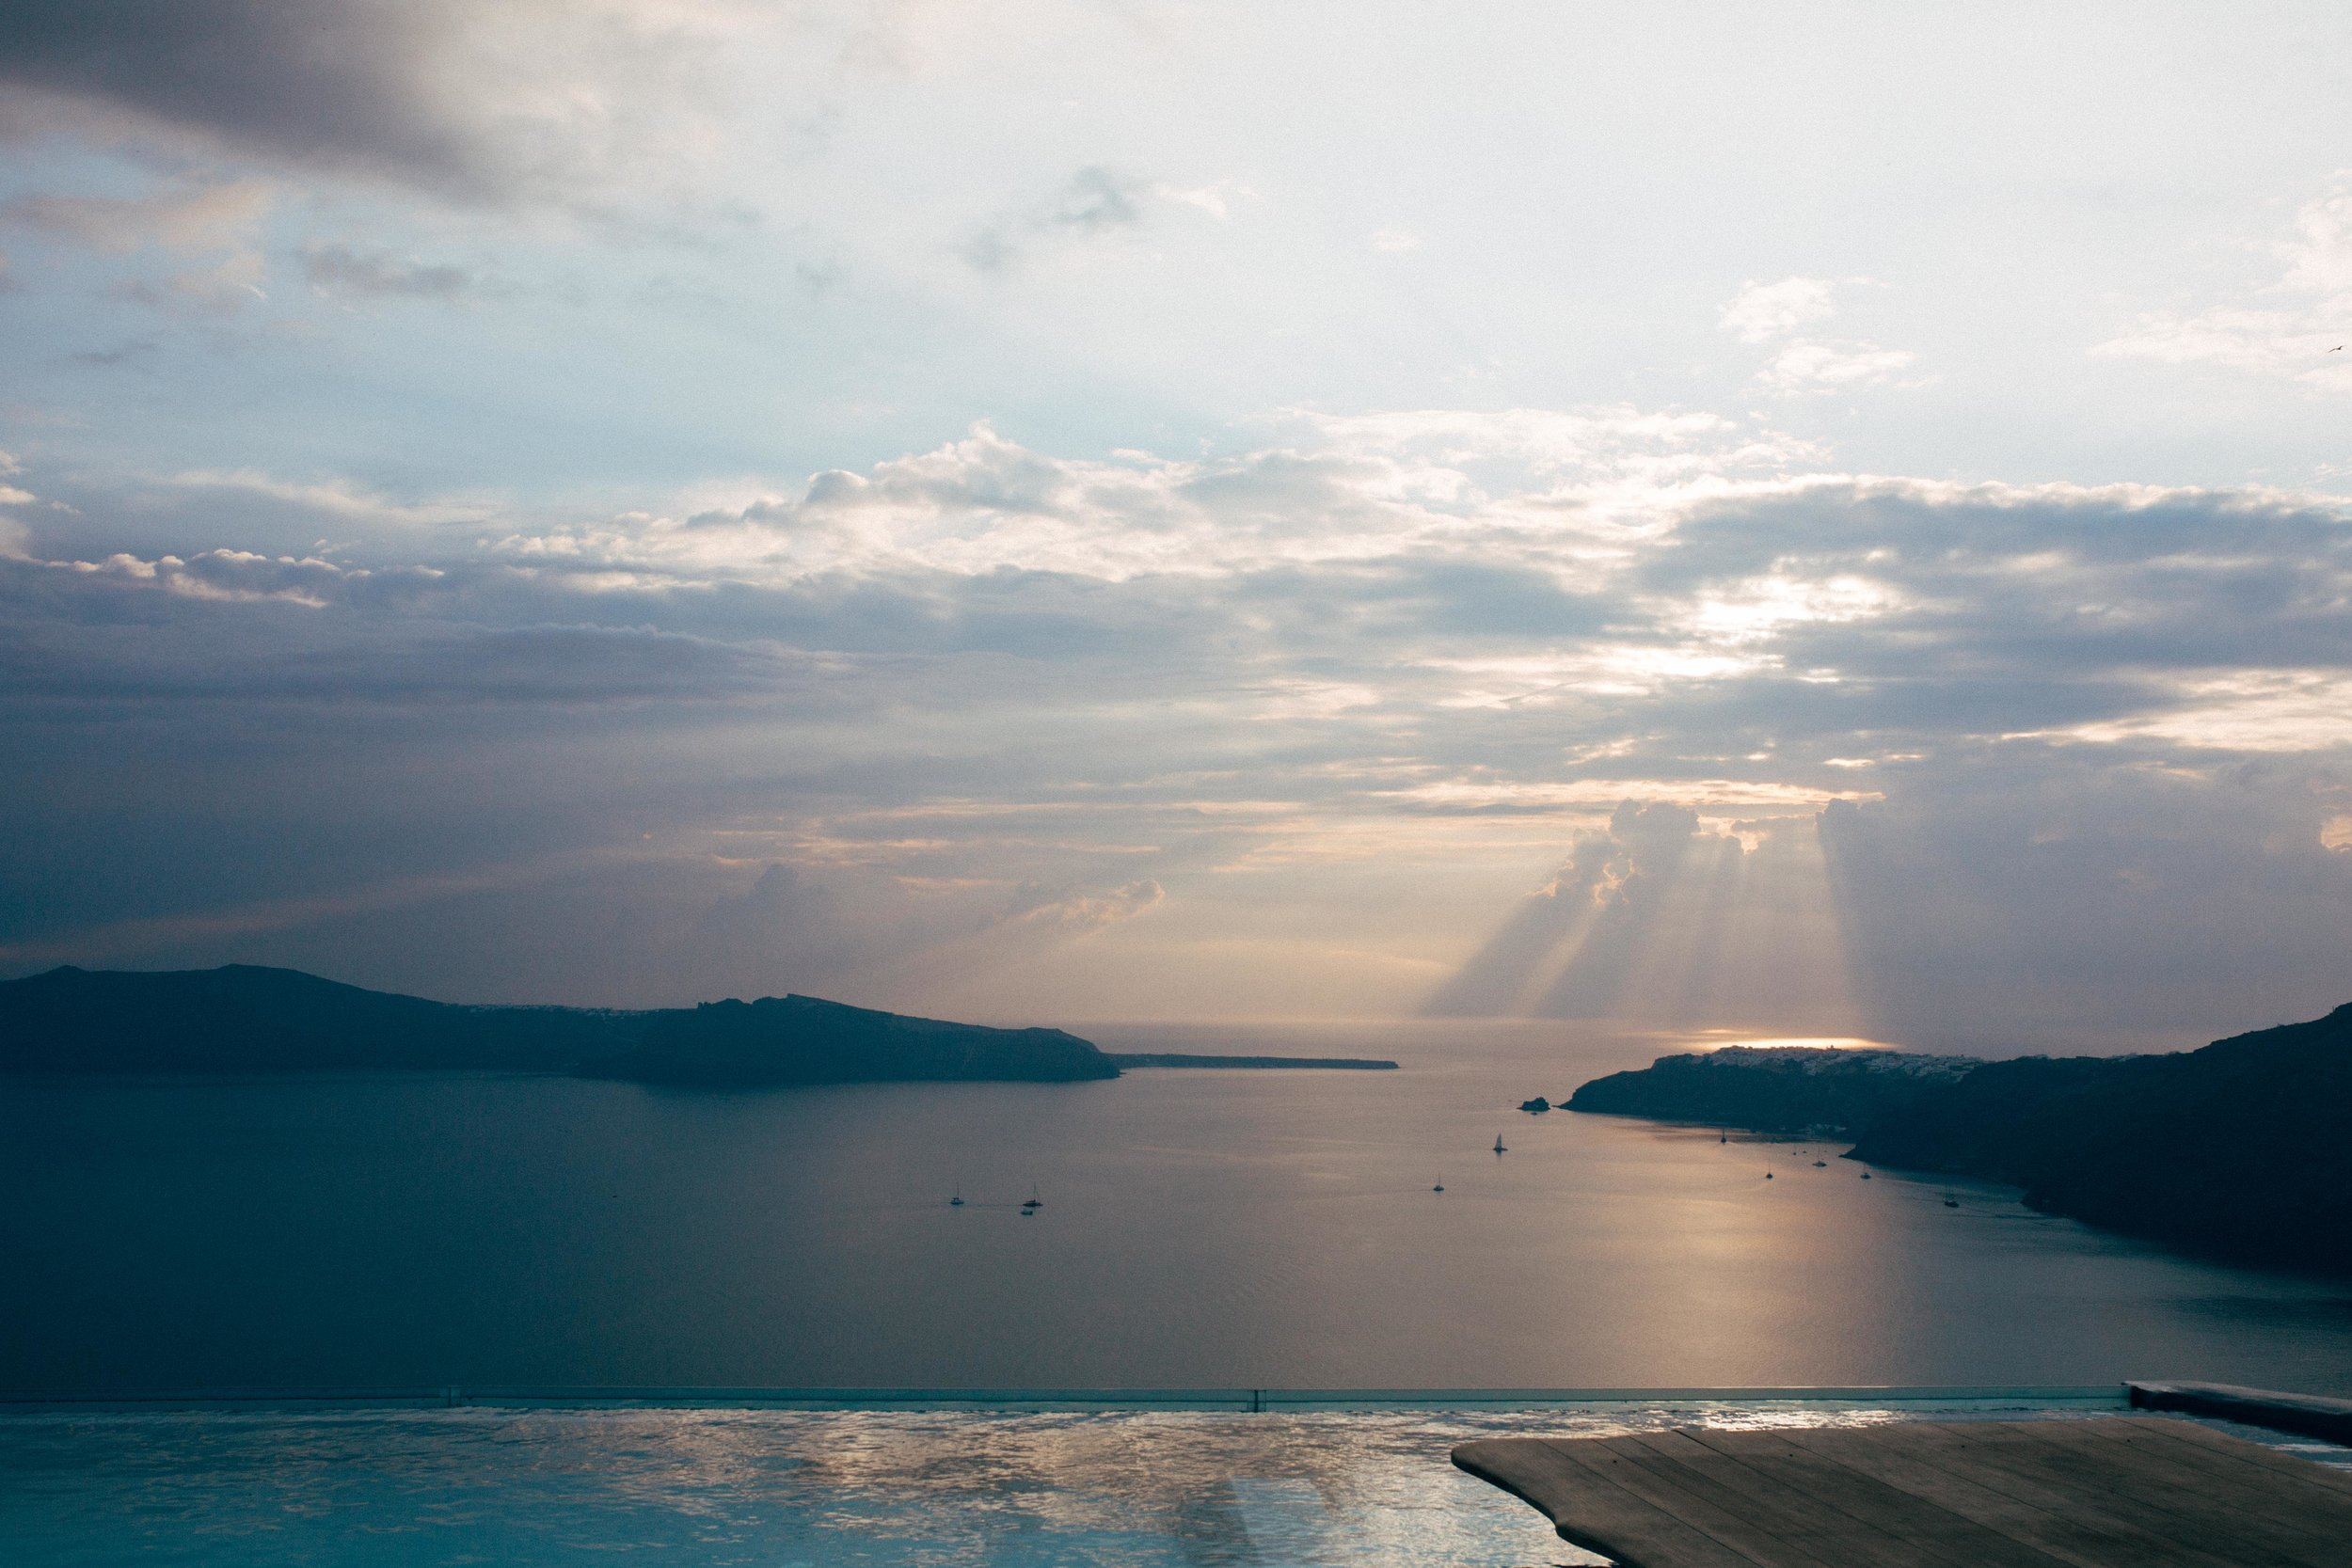 Sunset Watching - It's a must. You can grab a spot in Oia or pull over on the side of the road down the Caldera or...splurge on an amazing dinner and watch it at a table with a delicious meal.